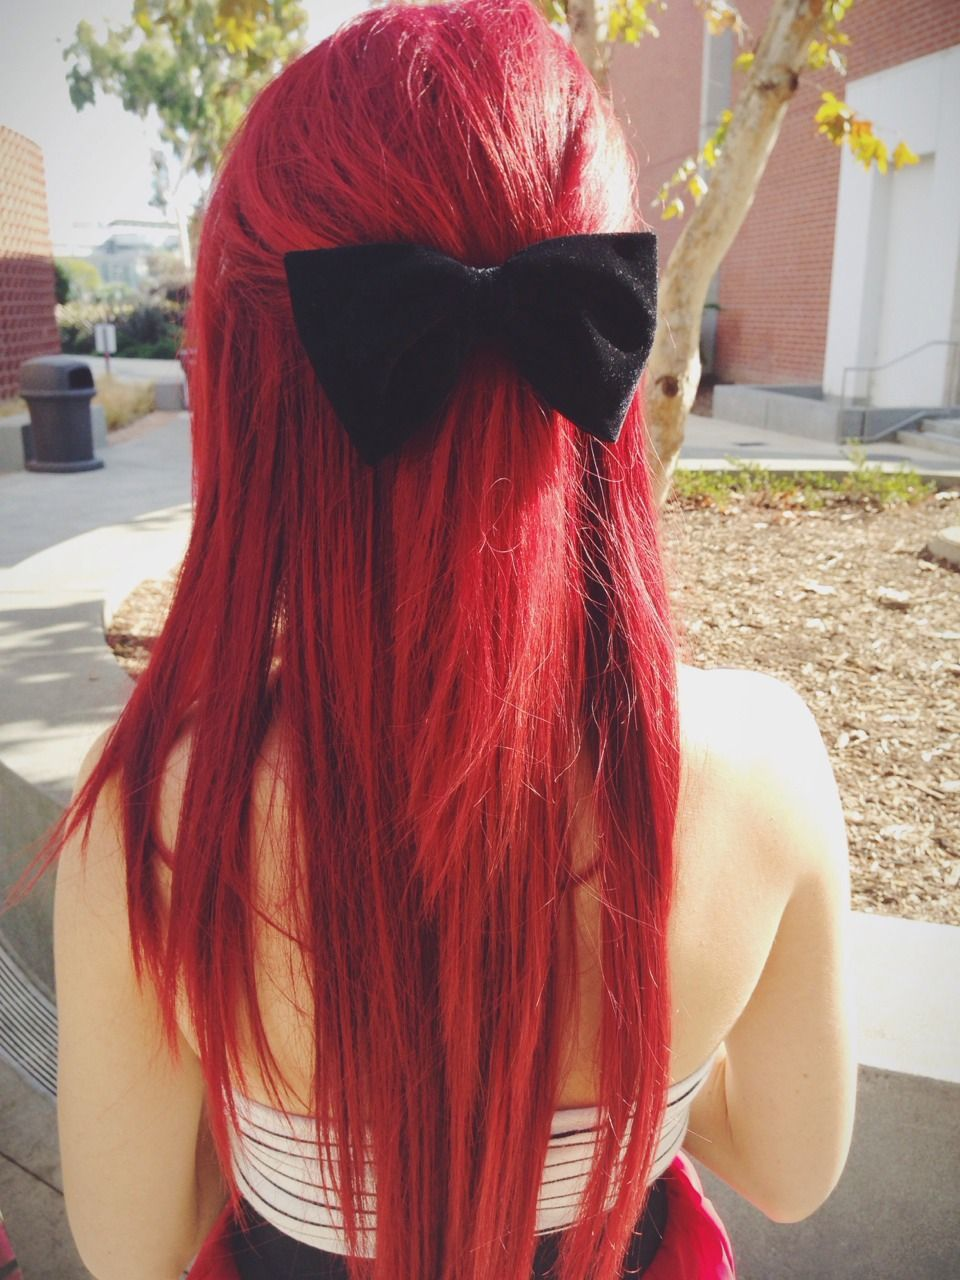 Hairstyle designs for women pinterest red hairstyles short